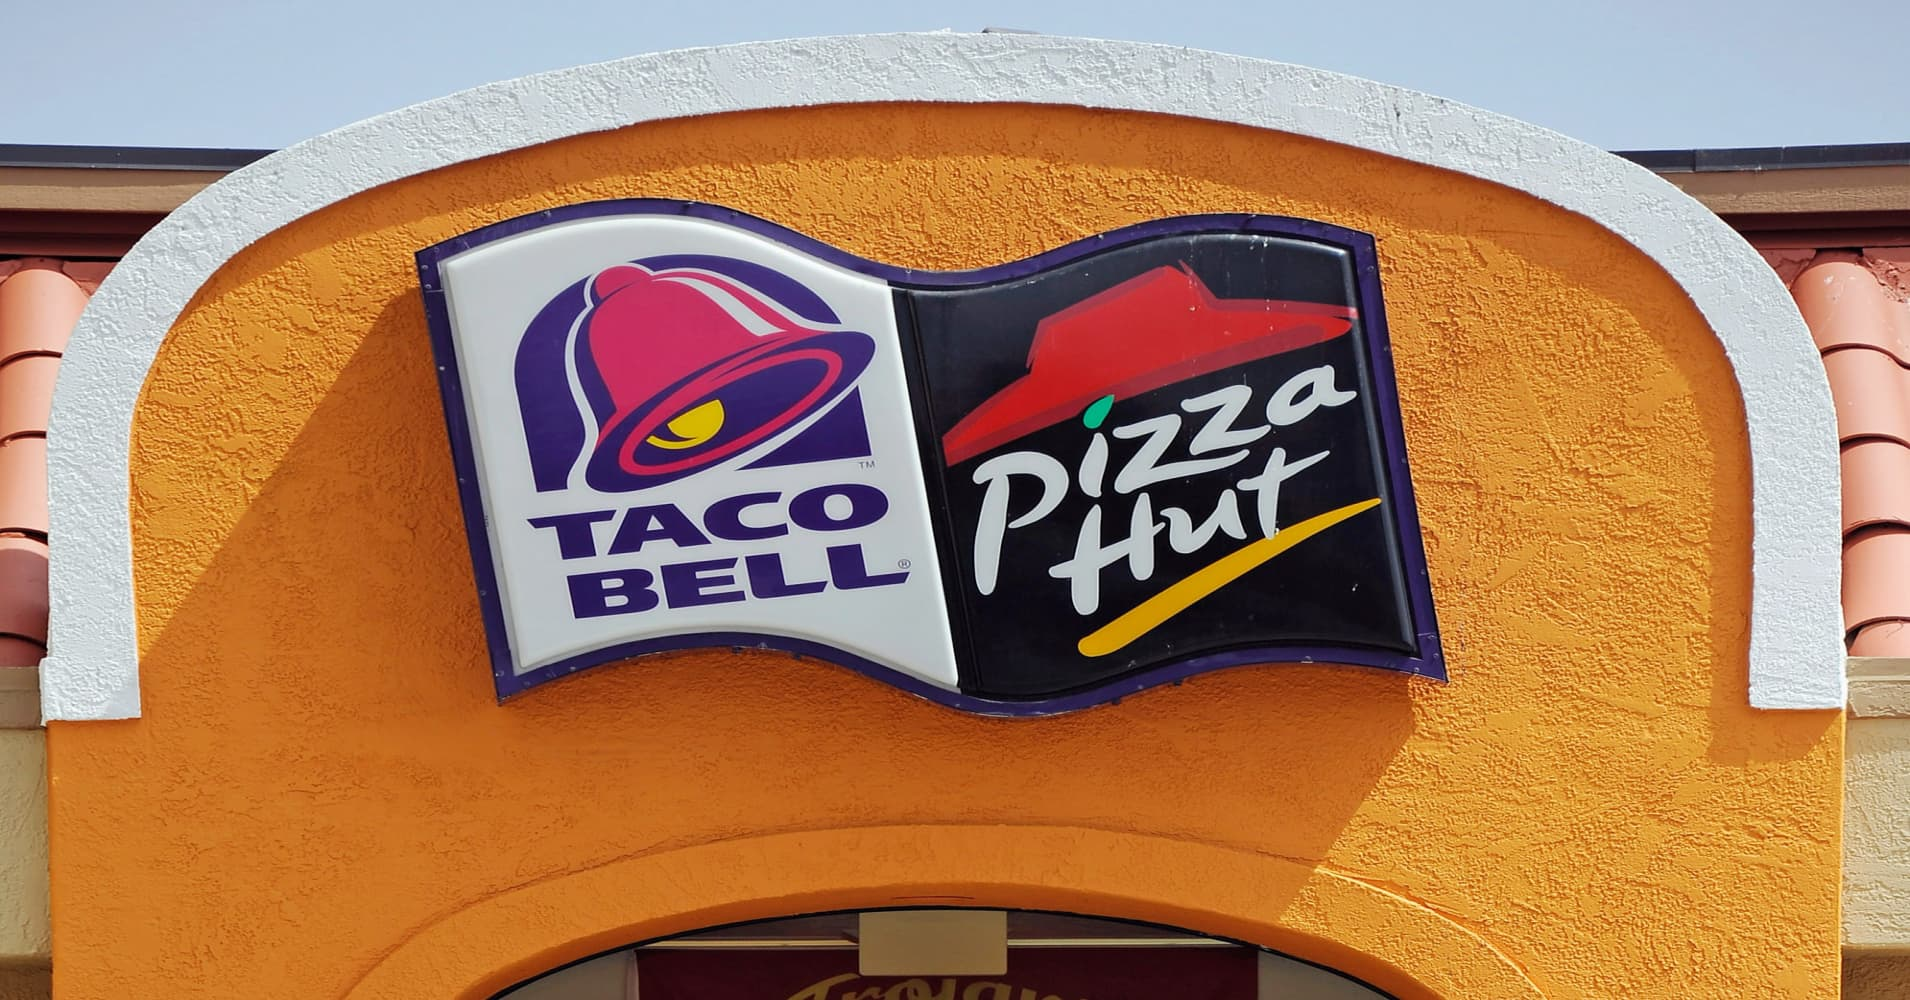 financial analysis of yum brands Introduction yum brands is the world's largest restaurant owned by pepsico with its headquarters situated in louisville, kentucky, united states the company is a.